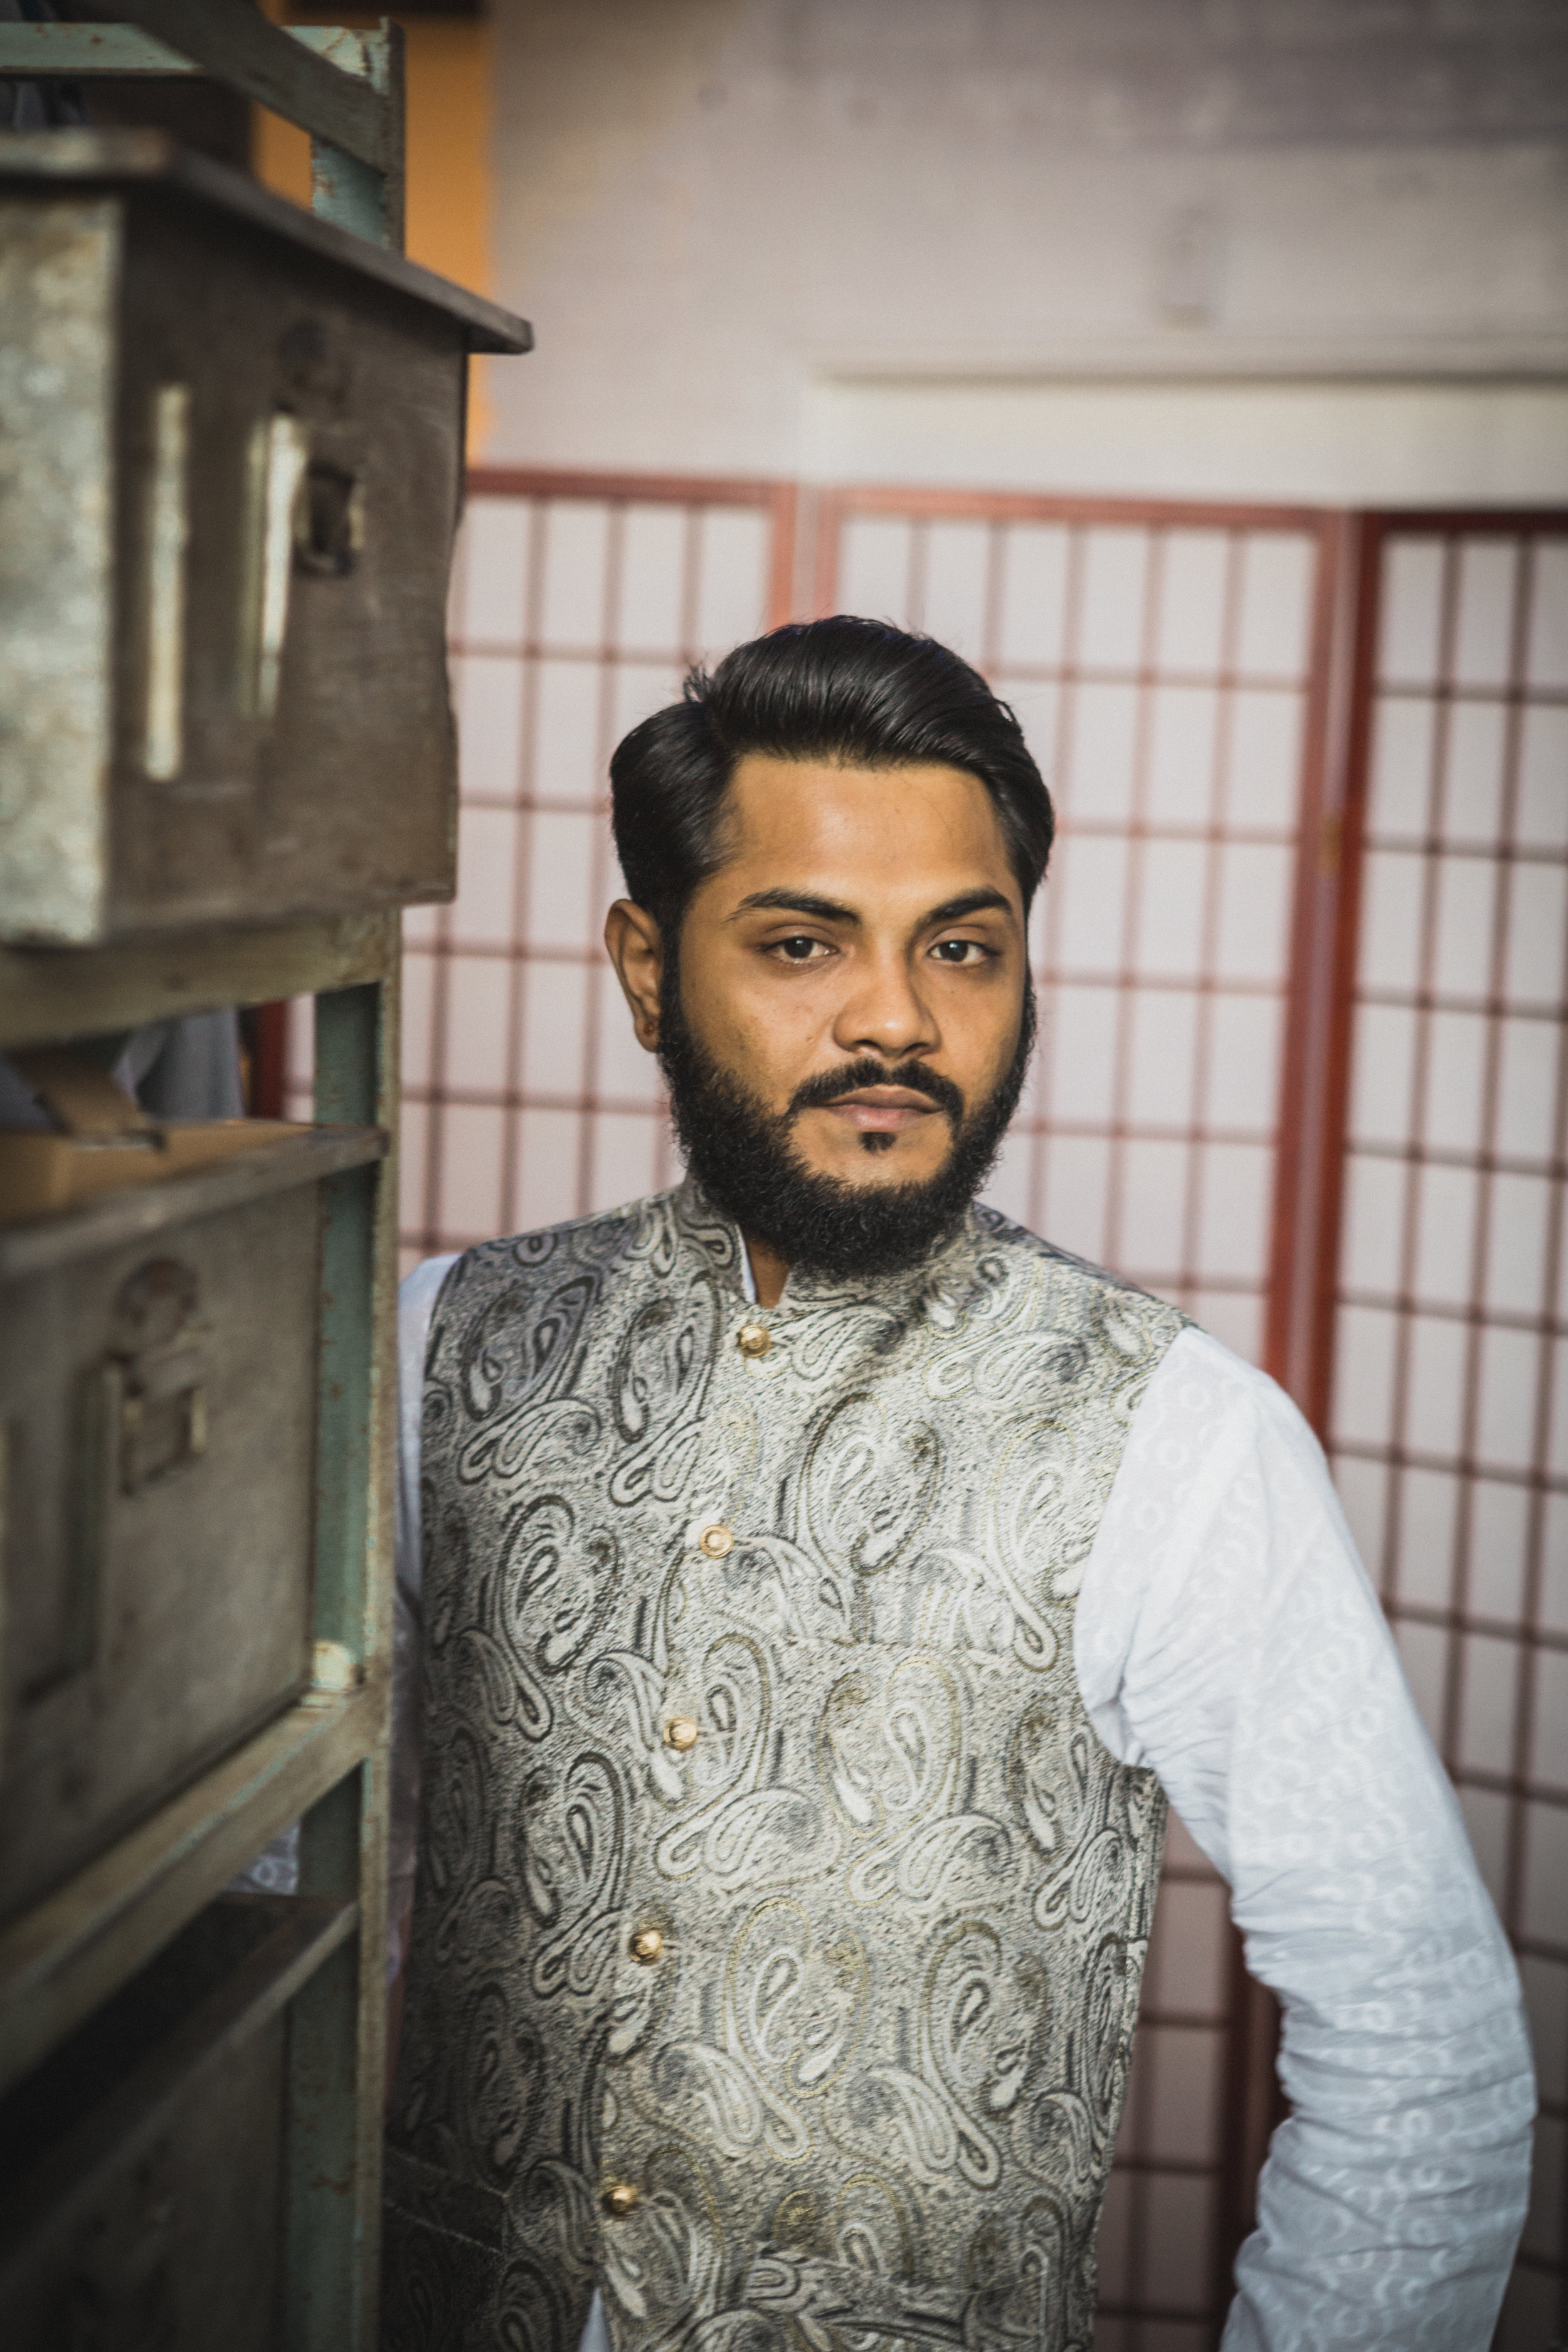 A groom poses in Malaysian vest at Trigger wedding venue in Chicago - Amy Stallard Photography